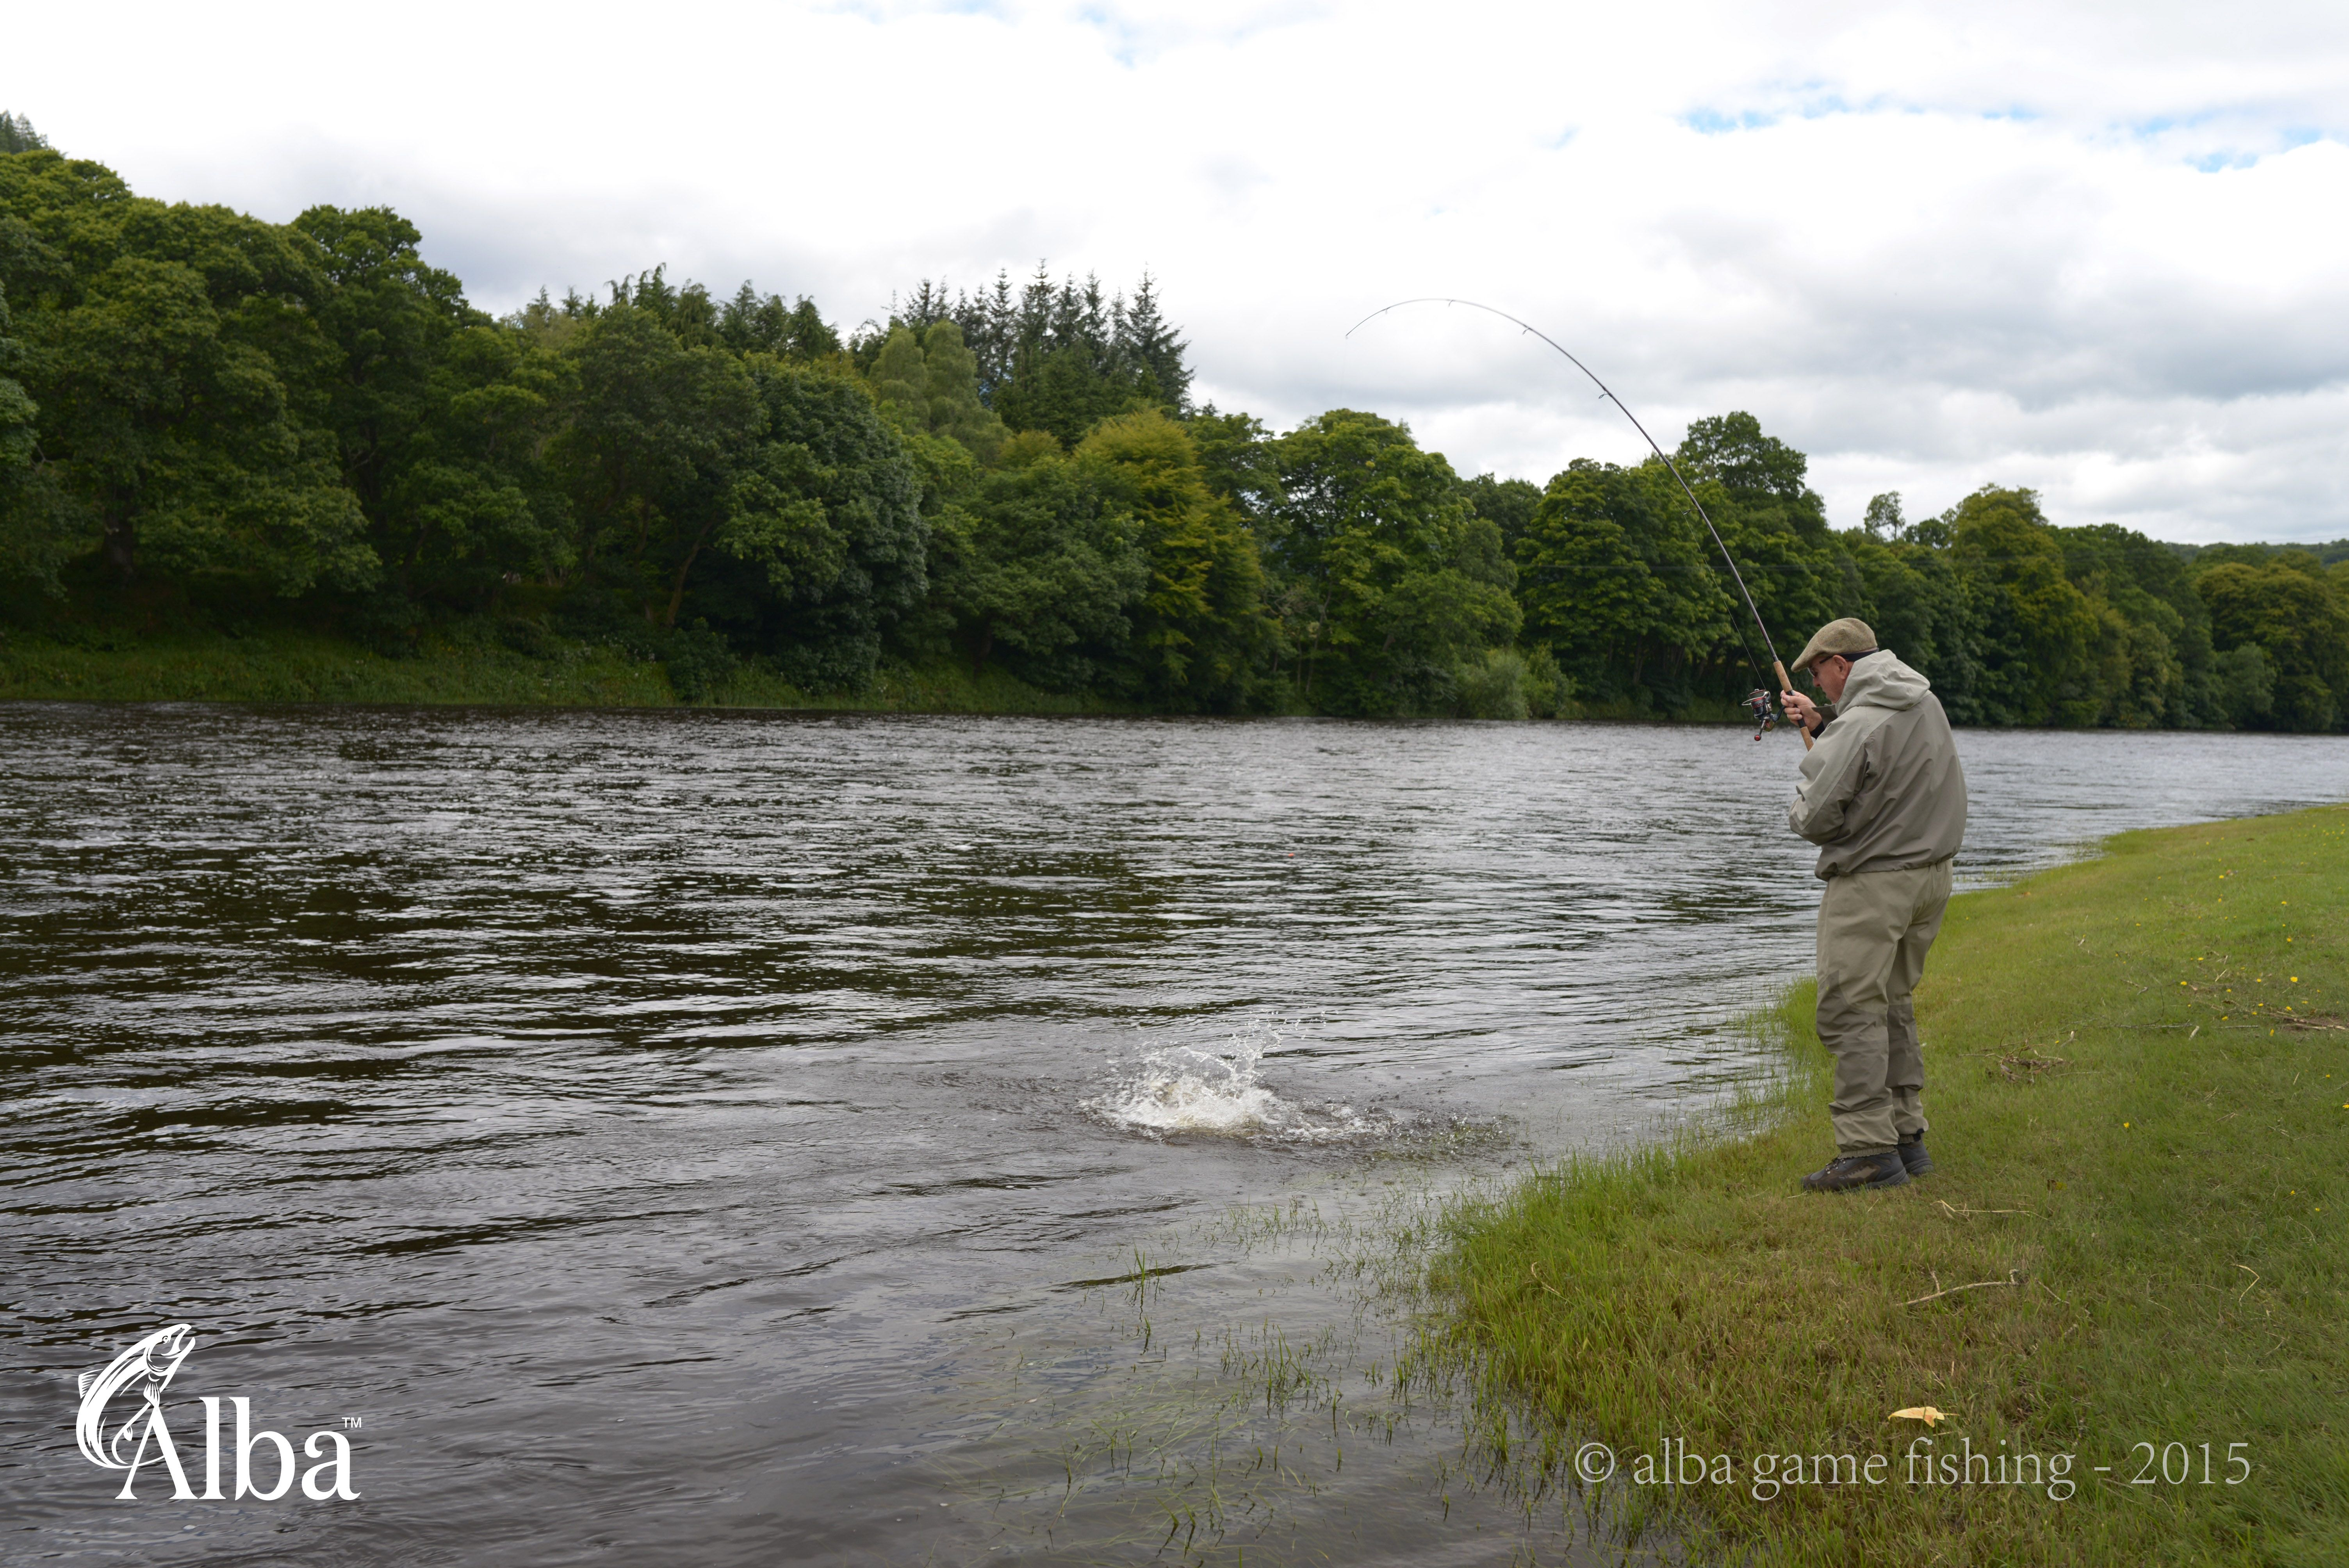 Richard From The Taxi Photo On This Board Into One Of The 4 Salmon Hooked On The River Tay Near Dunkeld Guided Sal Salmon Fishing Fishing Vacation Travel Fun